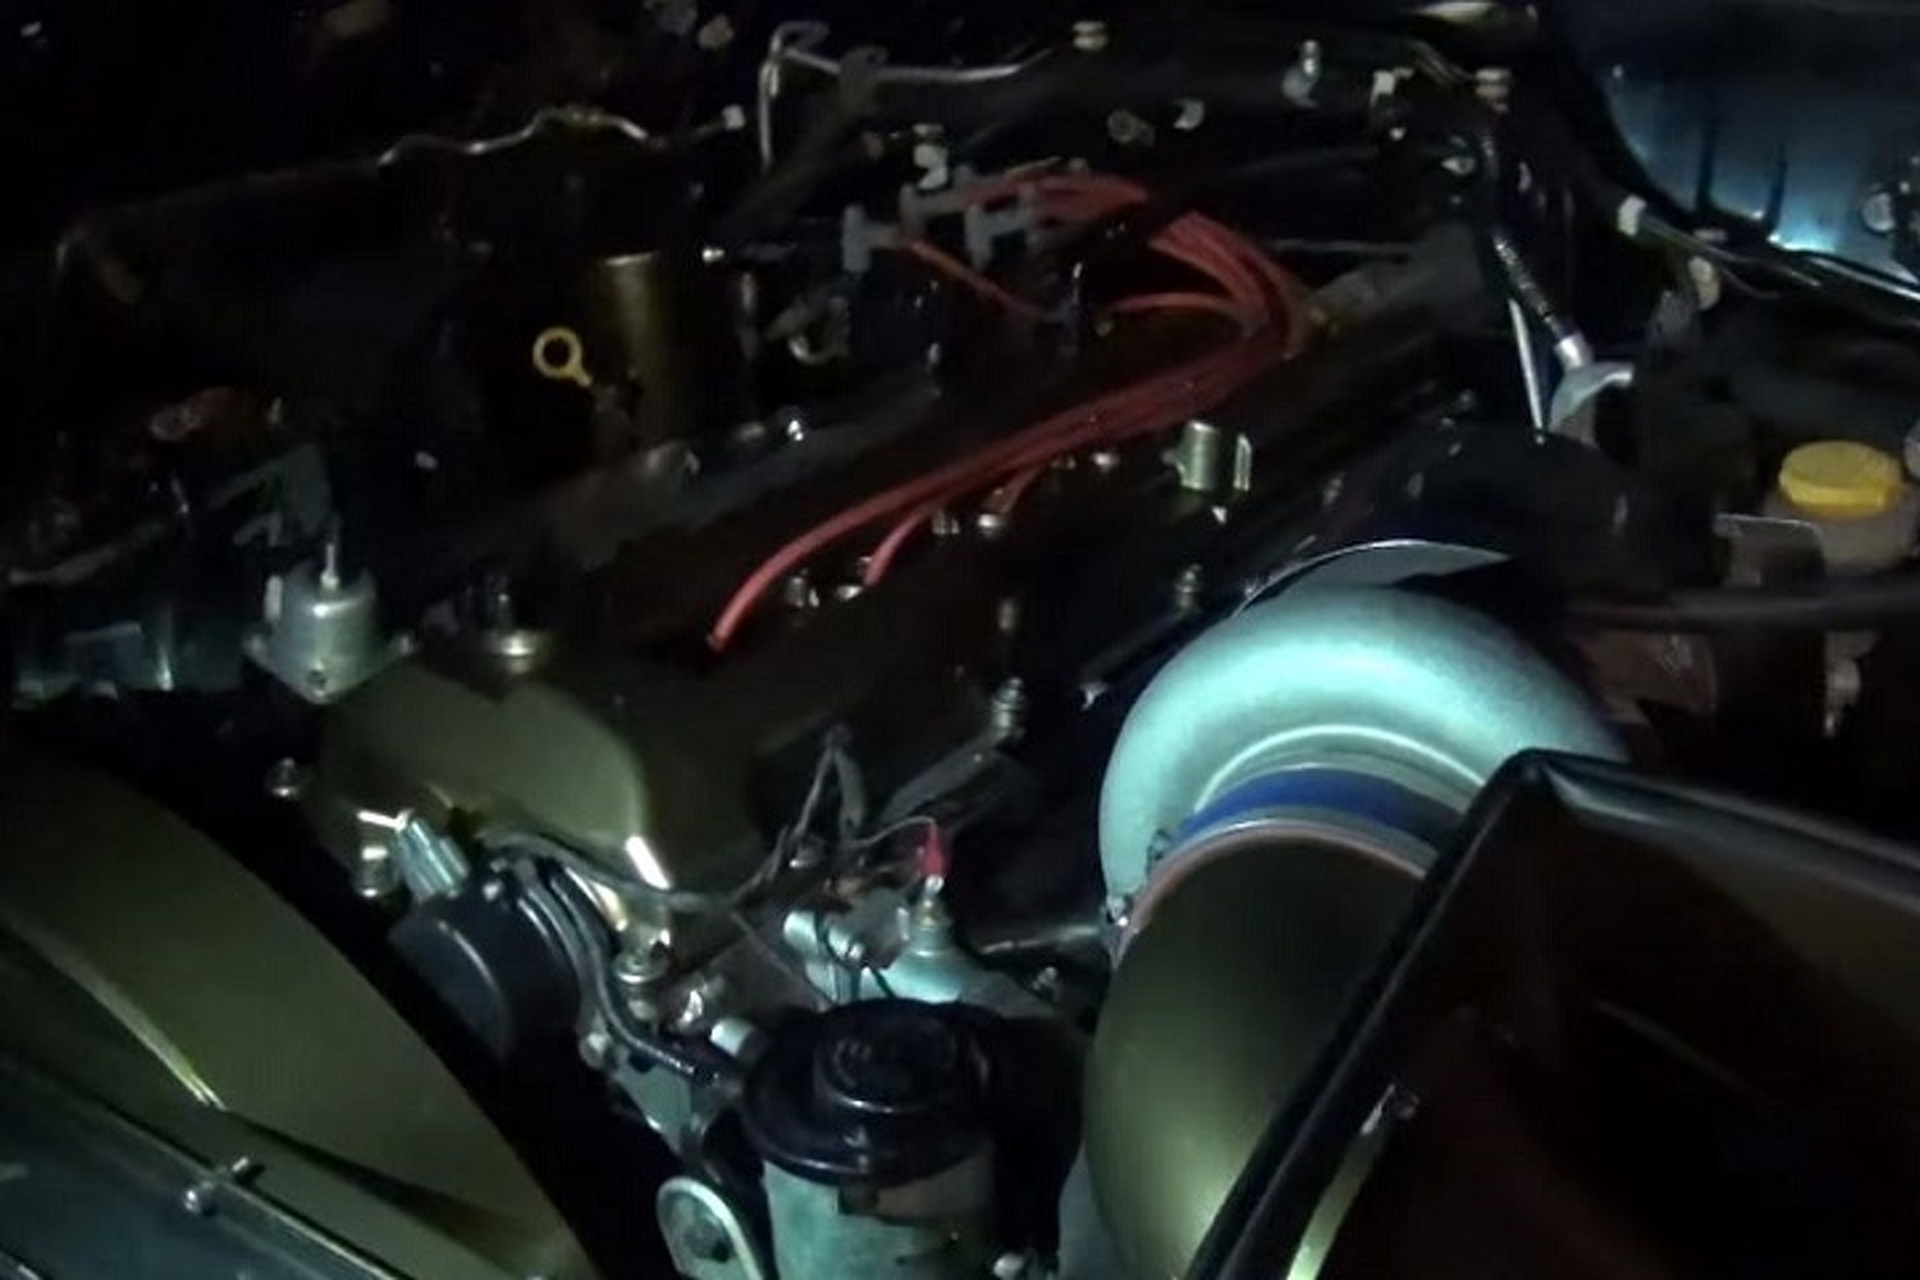 Watch and Fear This 1,400-HP Nissan Sleeper SUV